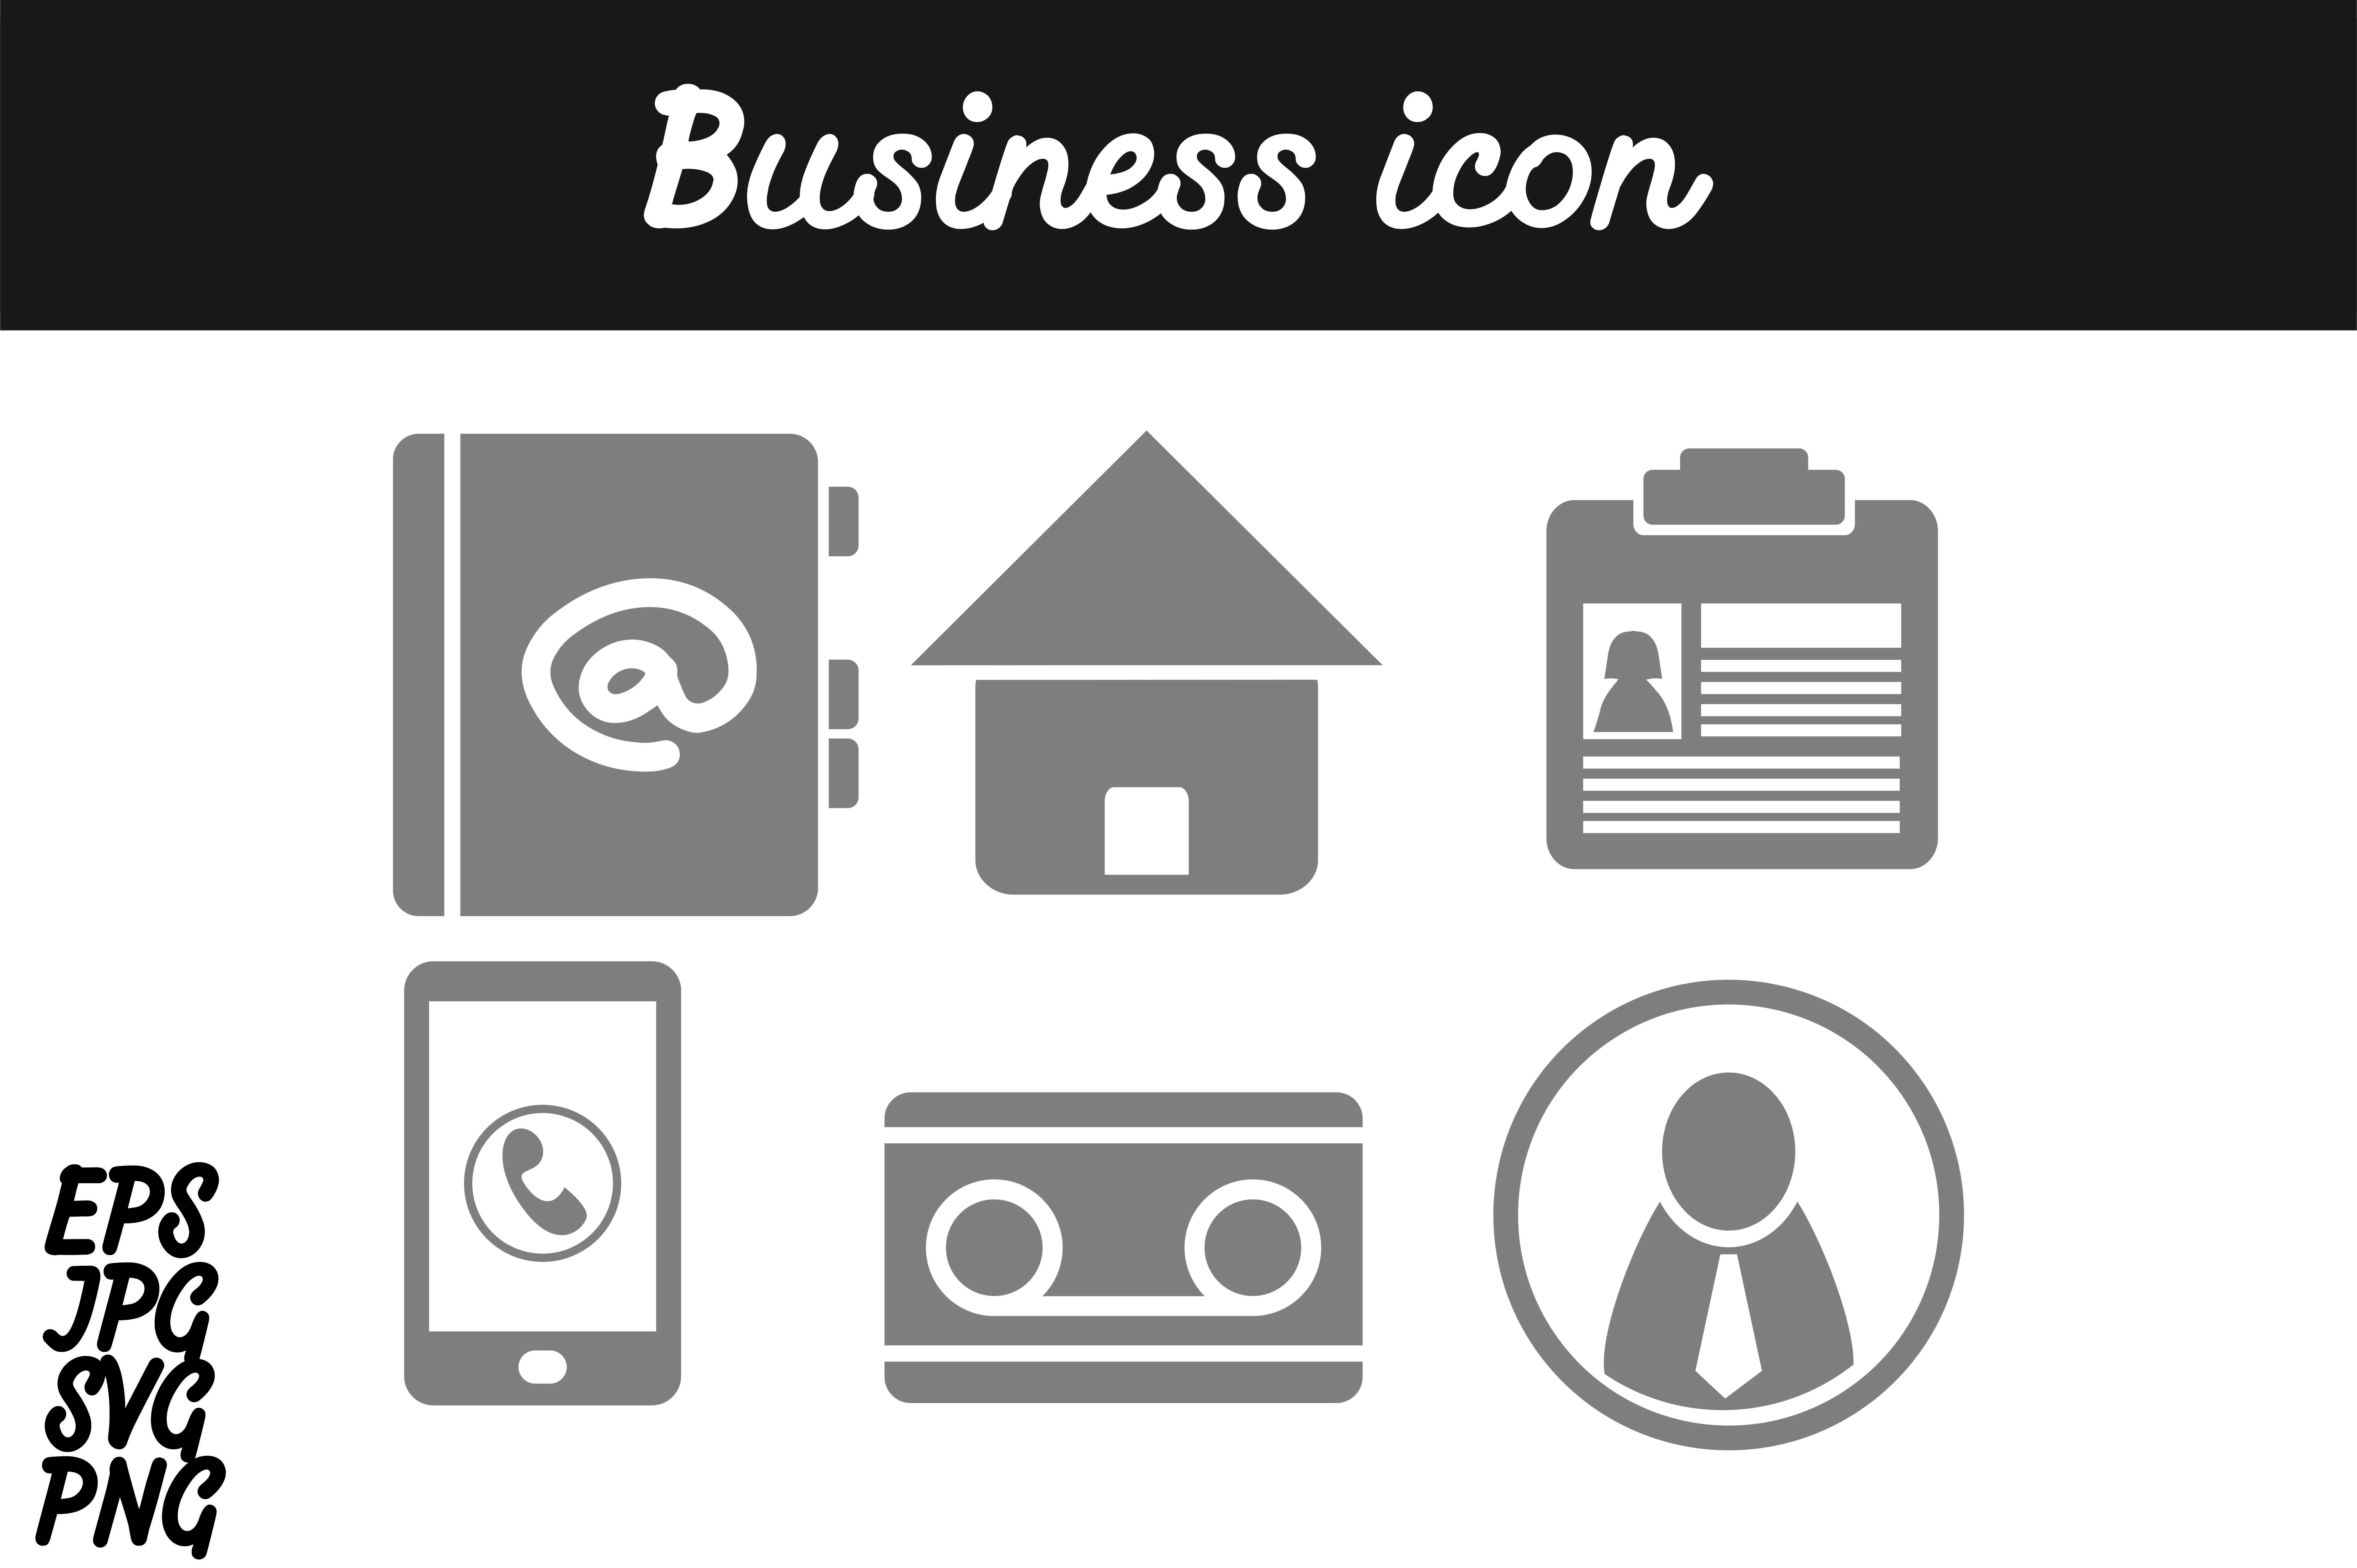 Download Free Bundle Business Icon Set Svg Vector Image Graphic By Arief Sapta for Cricut Explore, Silhouette and other cutting machines.